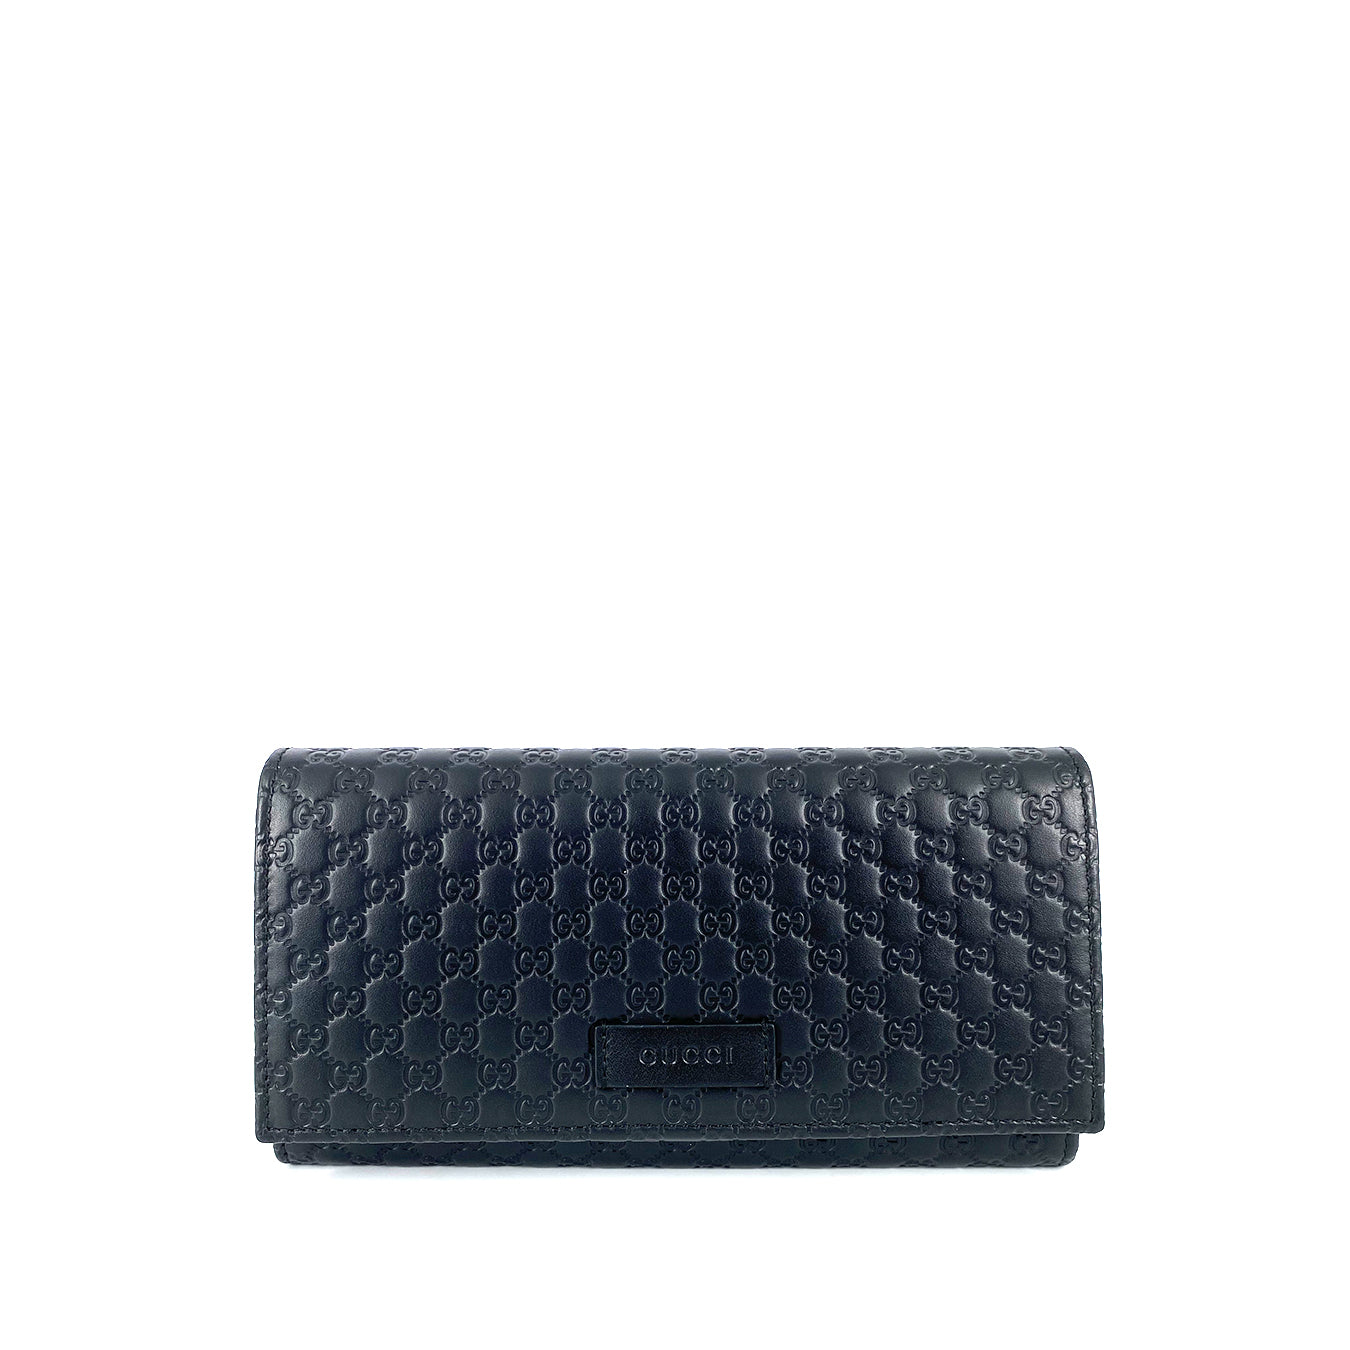 Gucci Microguccissima Continental Flap Long Bifold Leather Women's Wallet Black